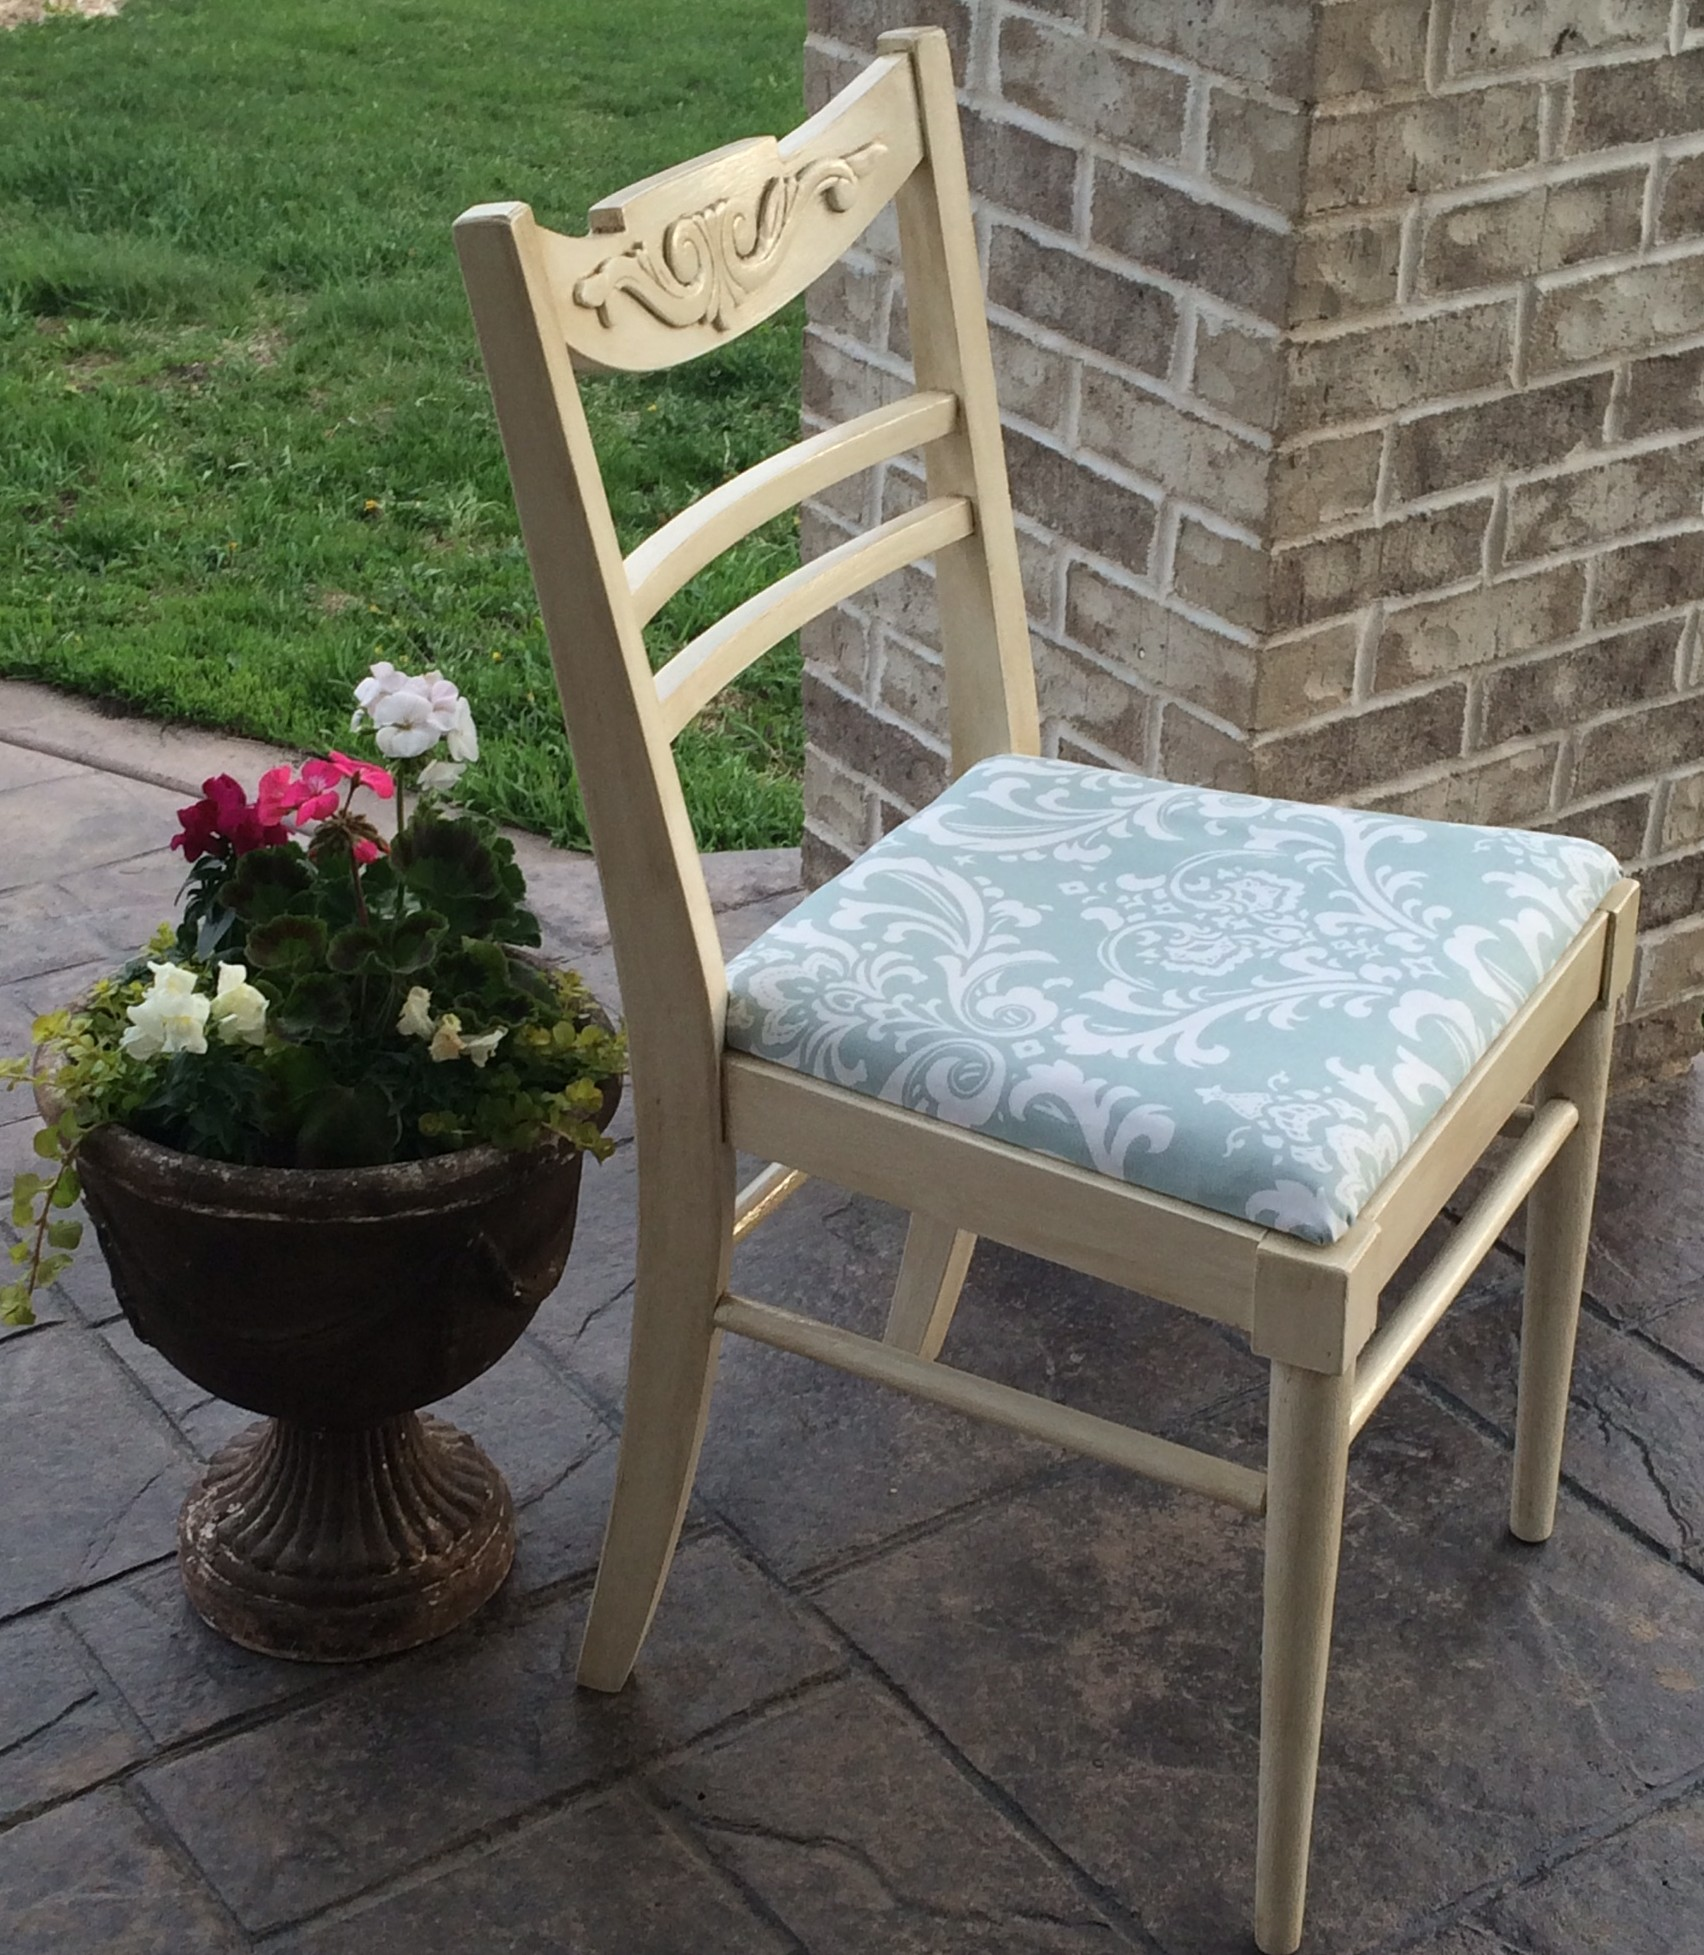 How To: Paint a Wooden Chair 13